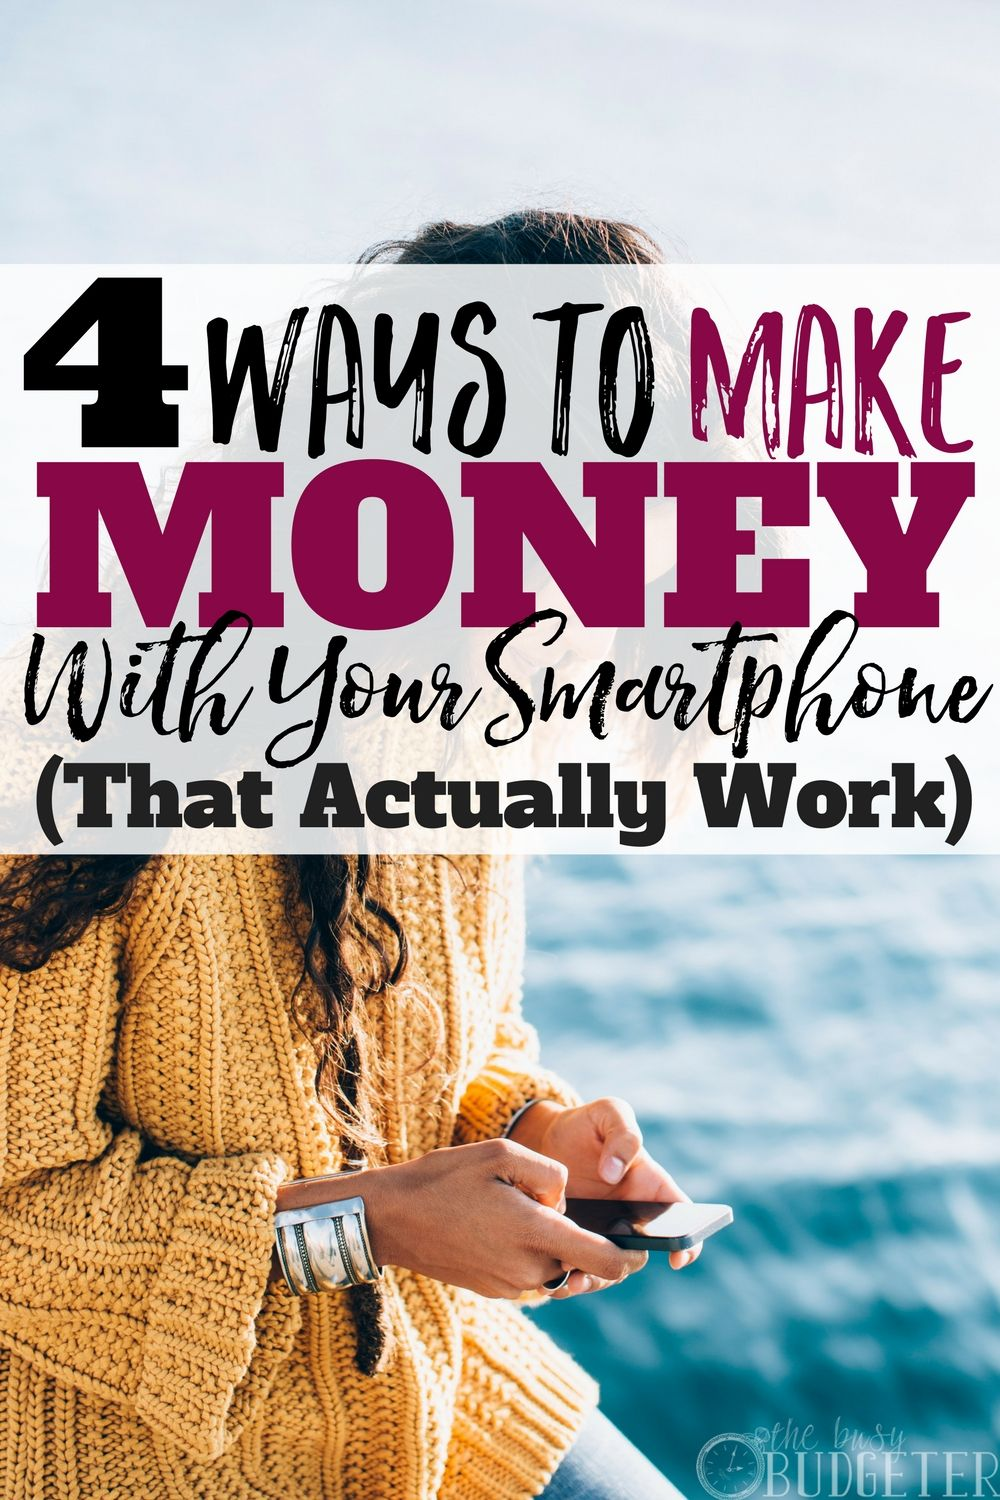 4 Ways to Make Money with Your Smartphone...that A...